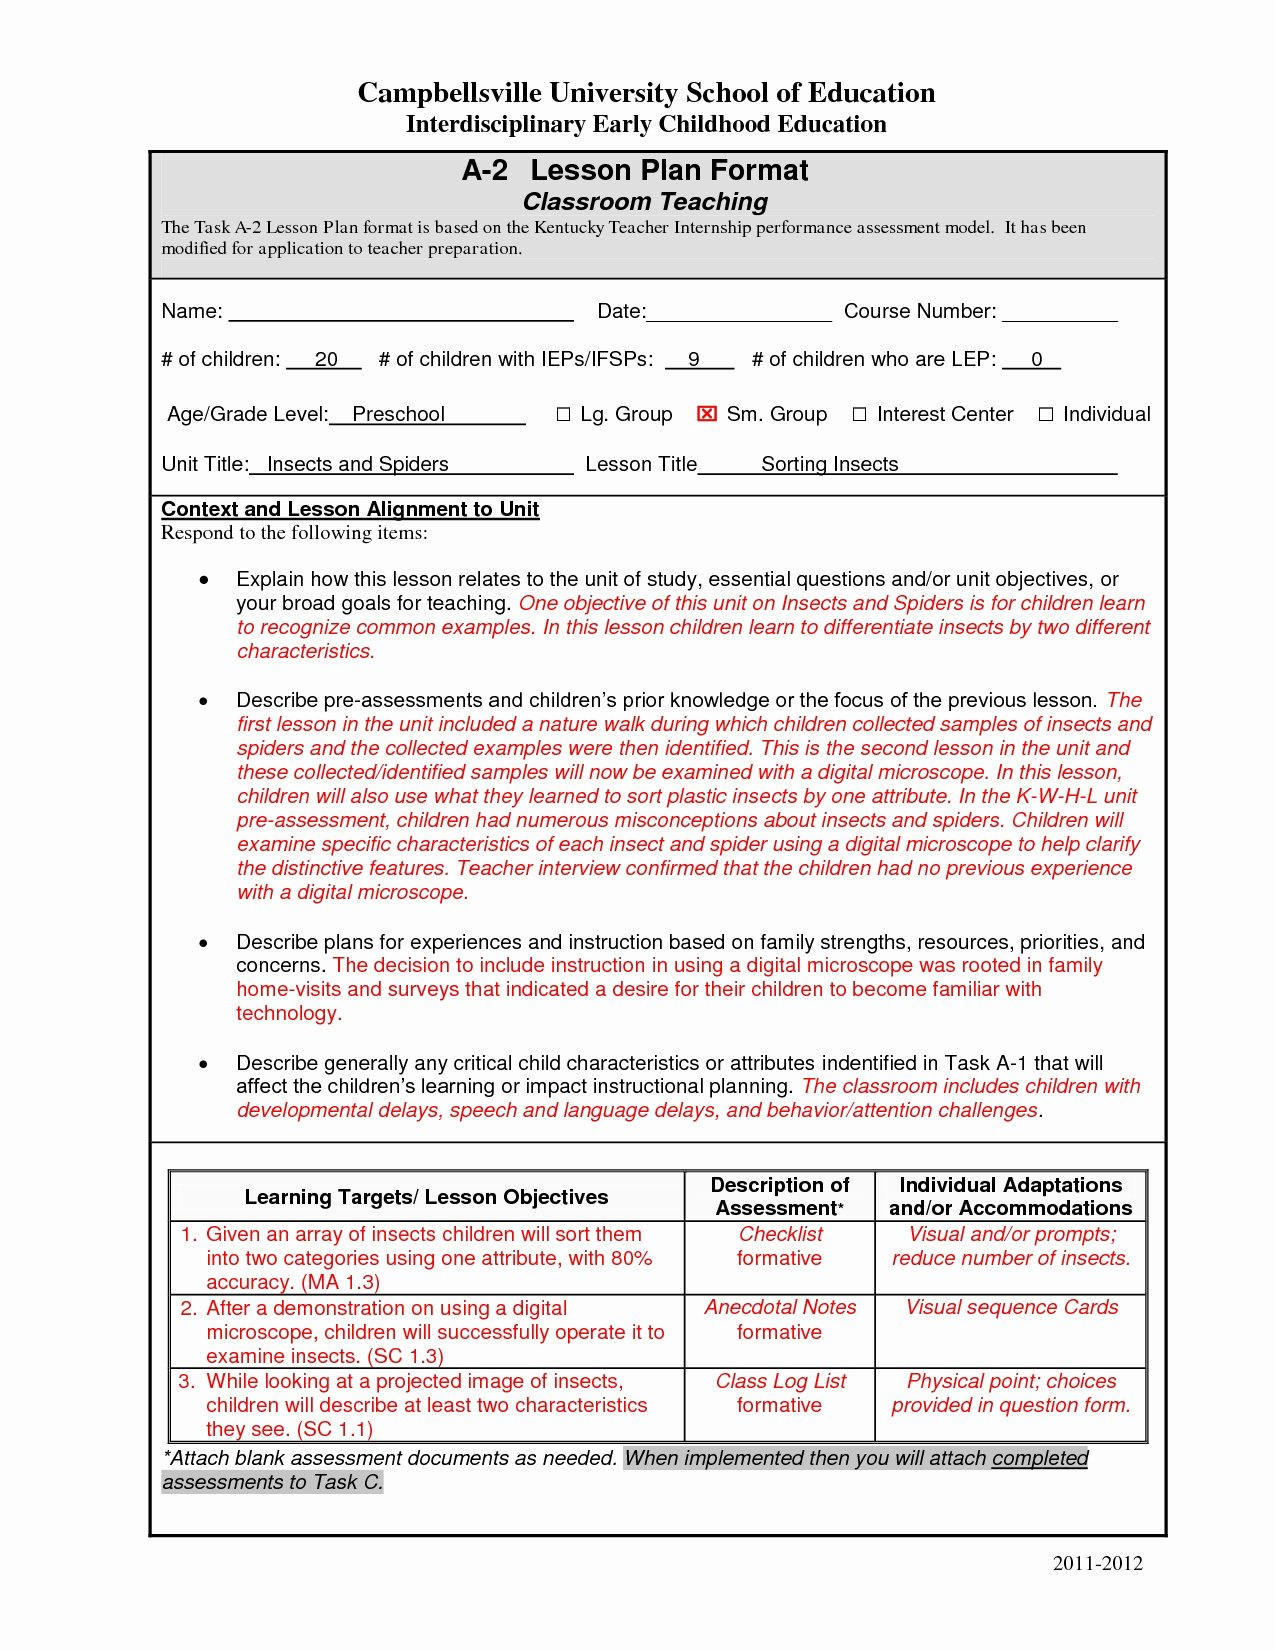 Edtpa Lesson Plan Template 2017 Beautiful Art Lesson Plans Template